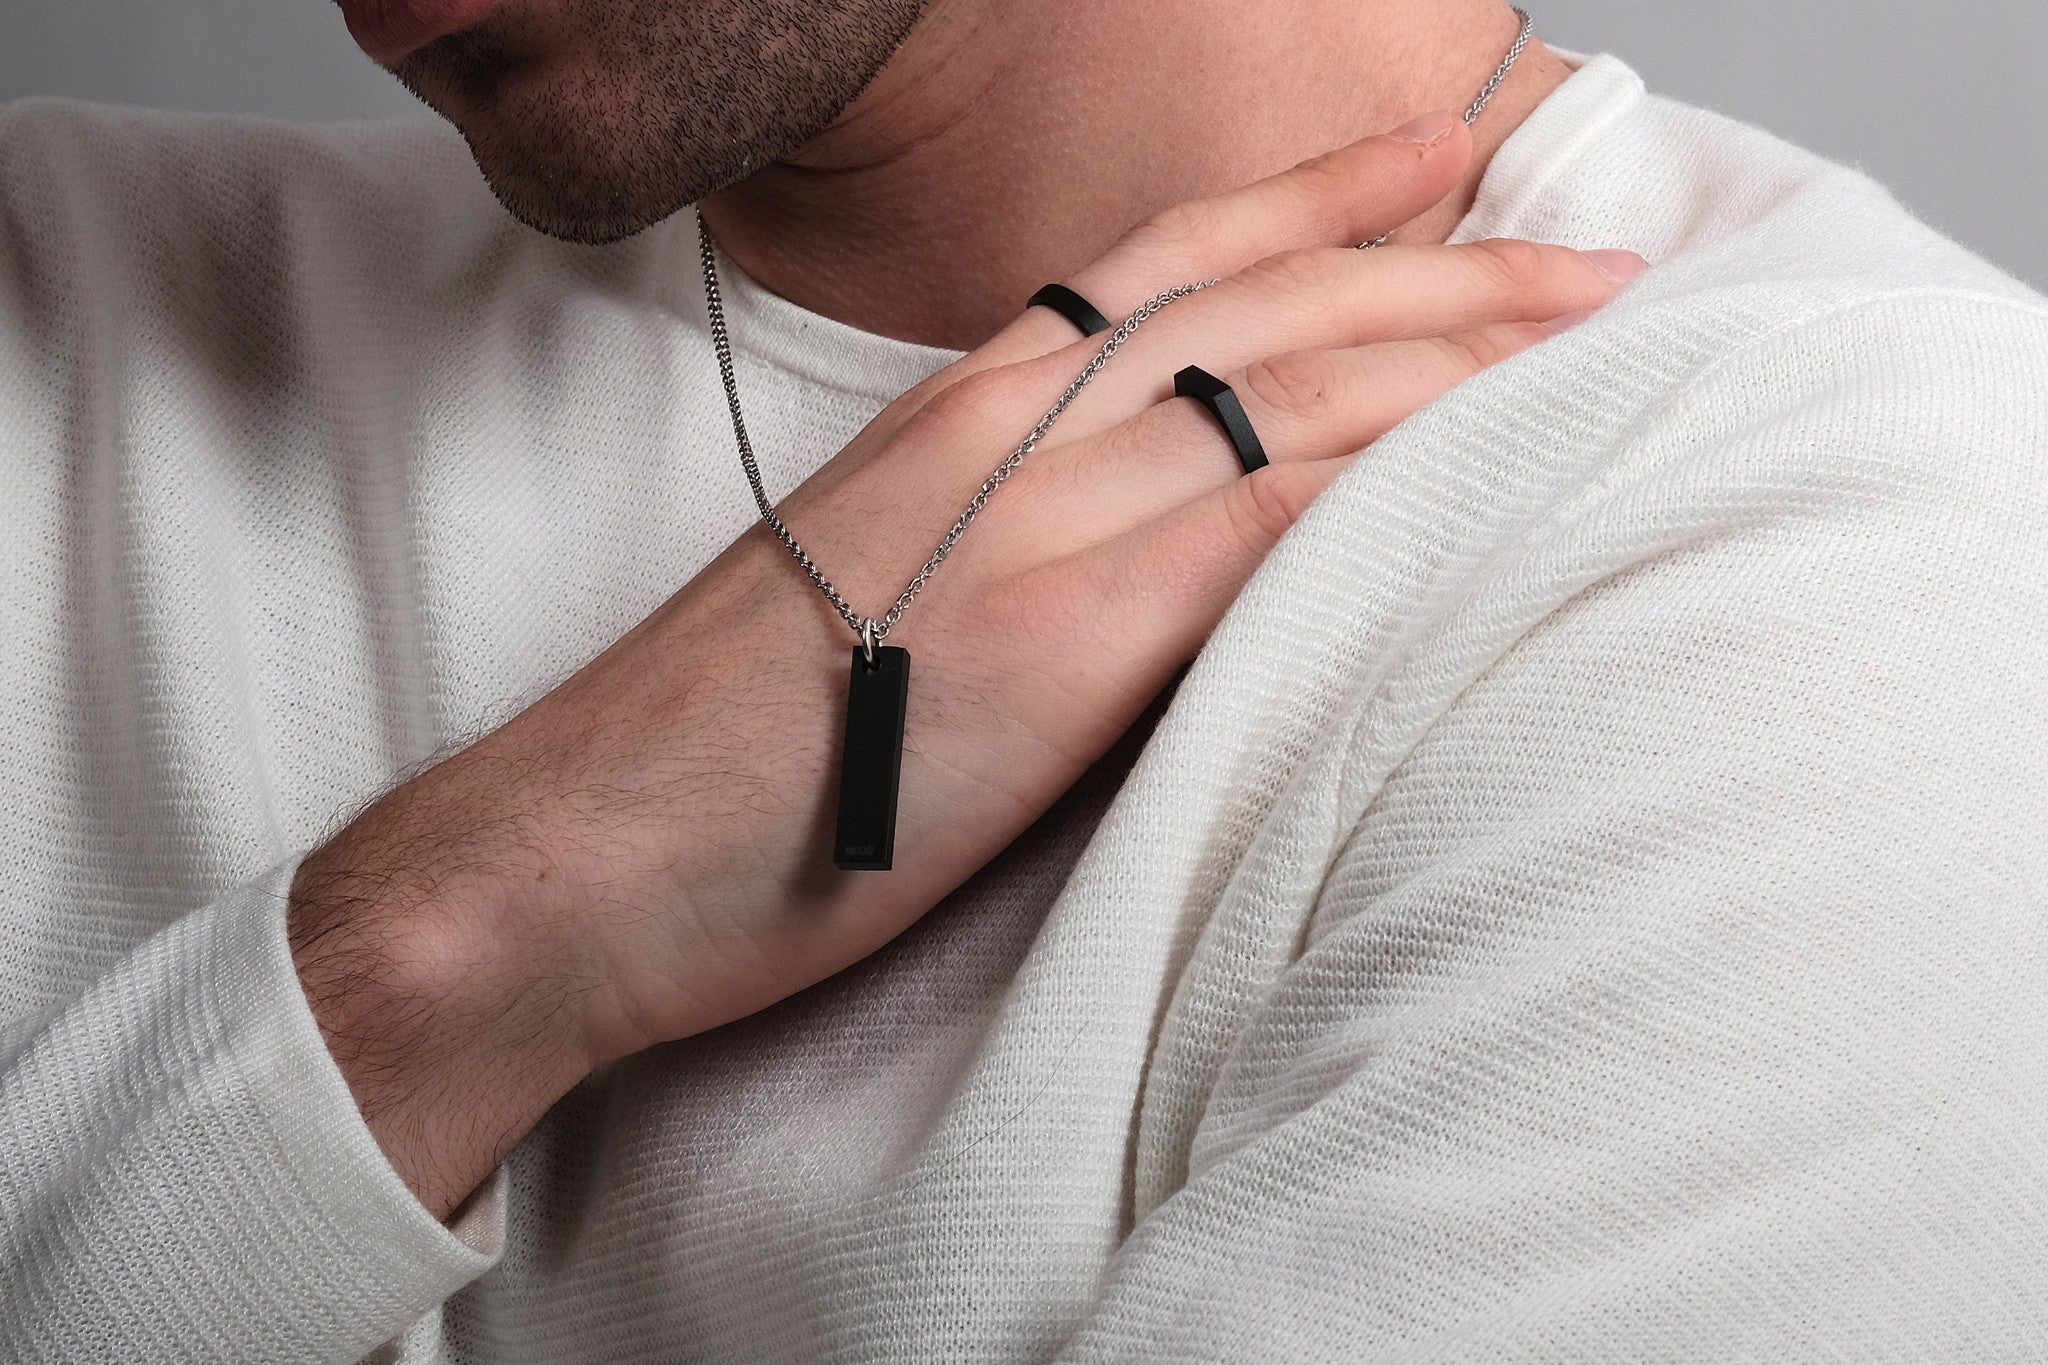 CS 8mm Pendant Necklace // Matte Black - Men's Pendant Necklace - MUJO NYC - 2